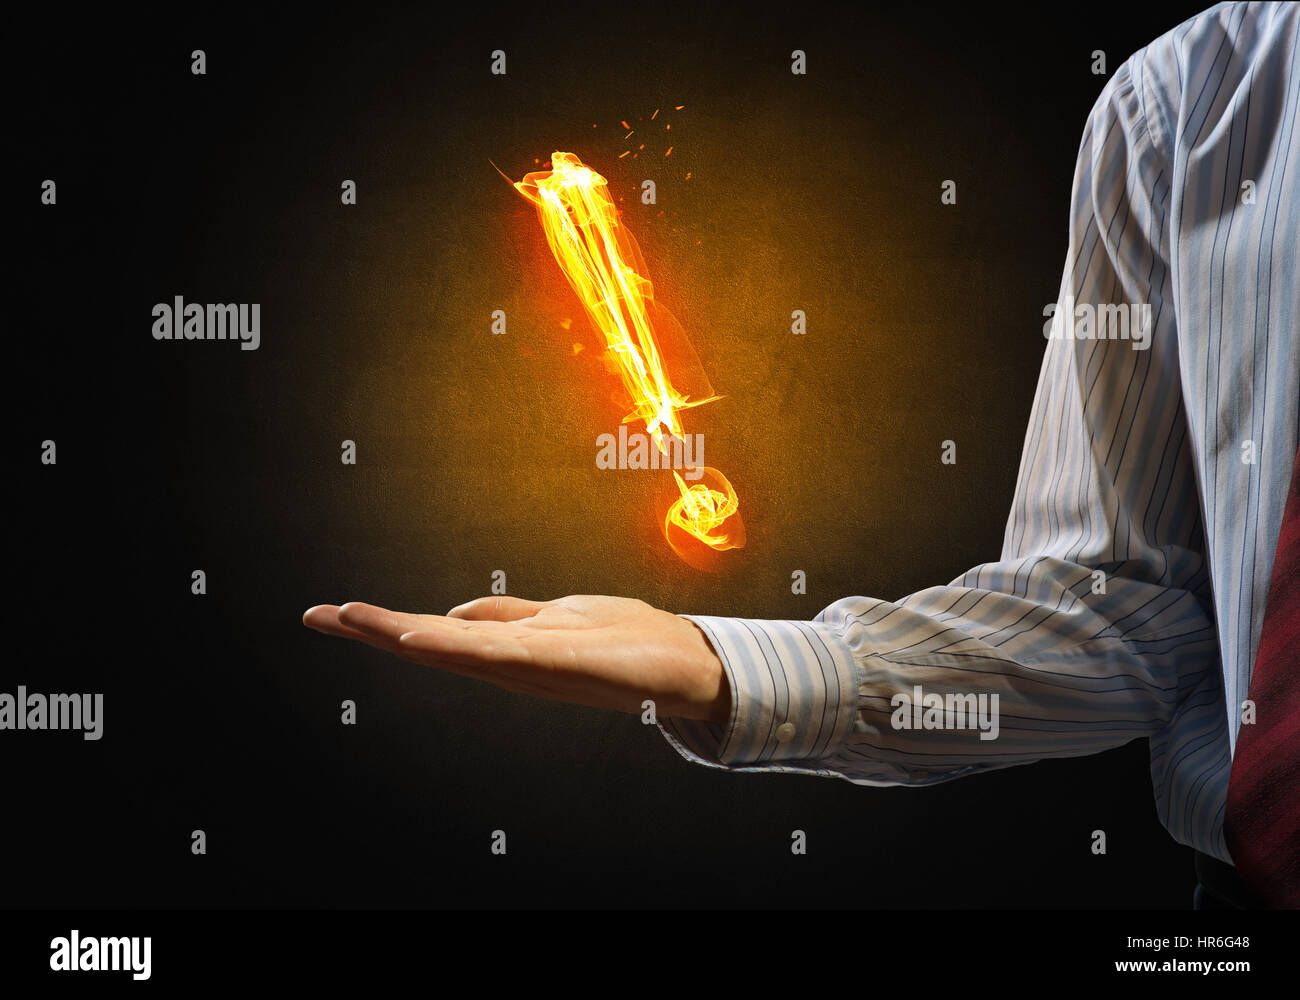 Fire exclamation mark - Stock Image